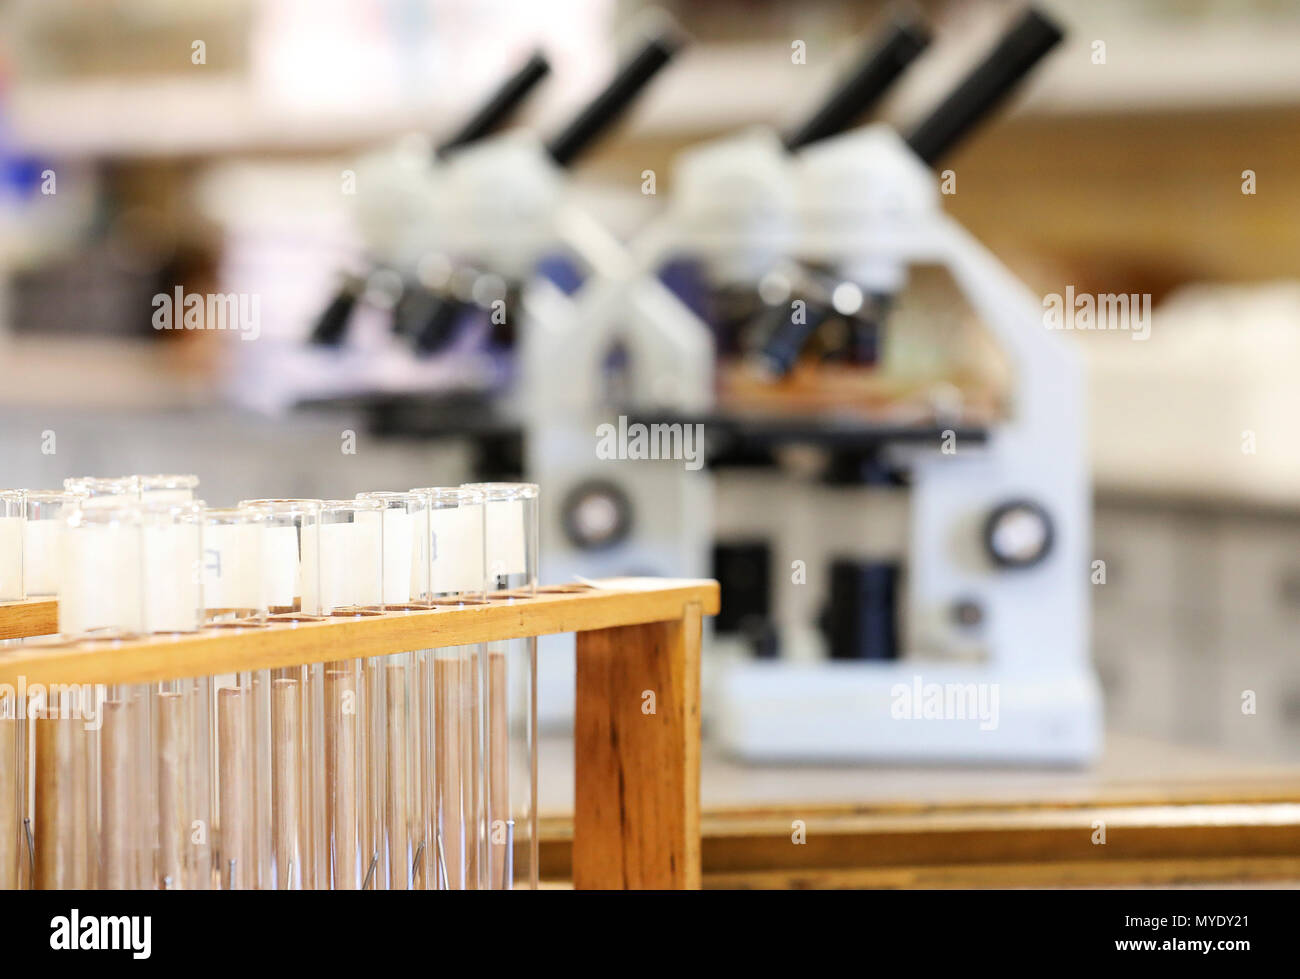 science scientist related images displaying electronic microscopes and test tubes in a laboratory or storeroom. strong education research and medical - Stock Image